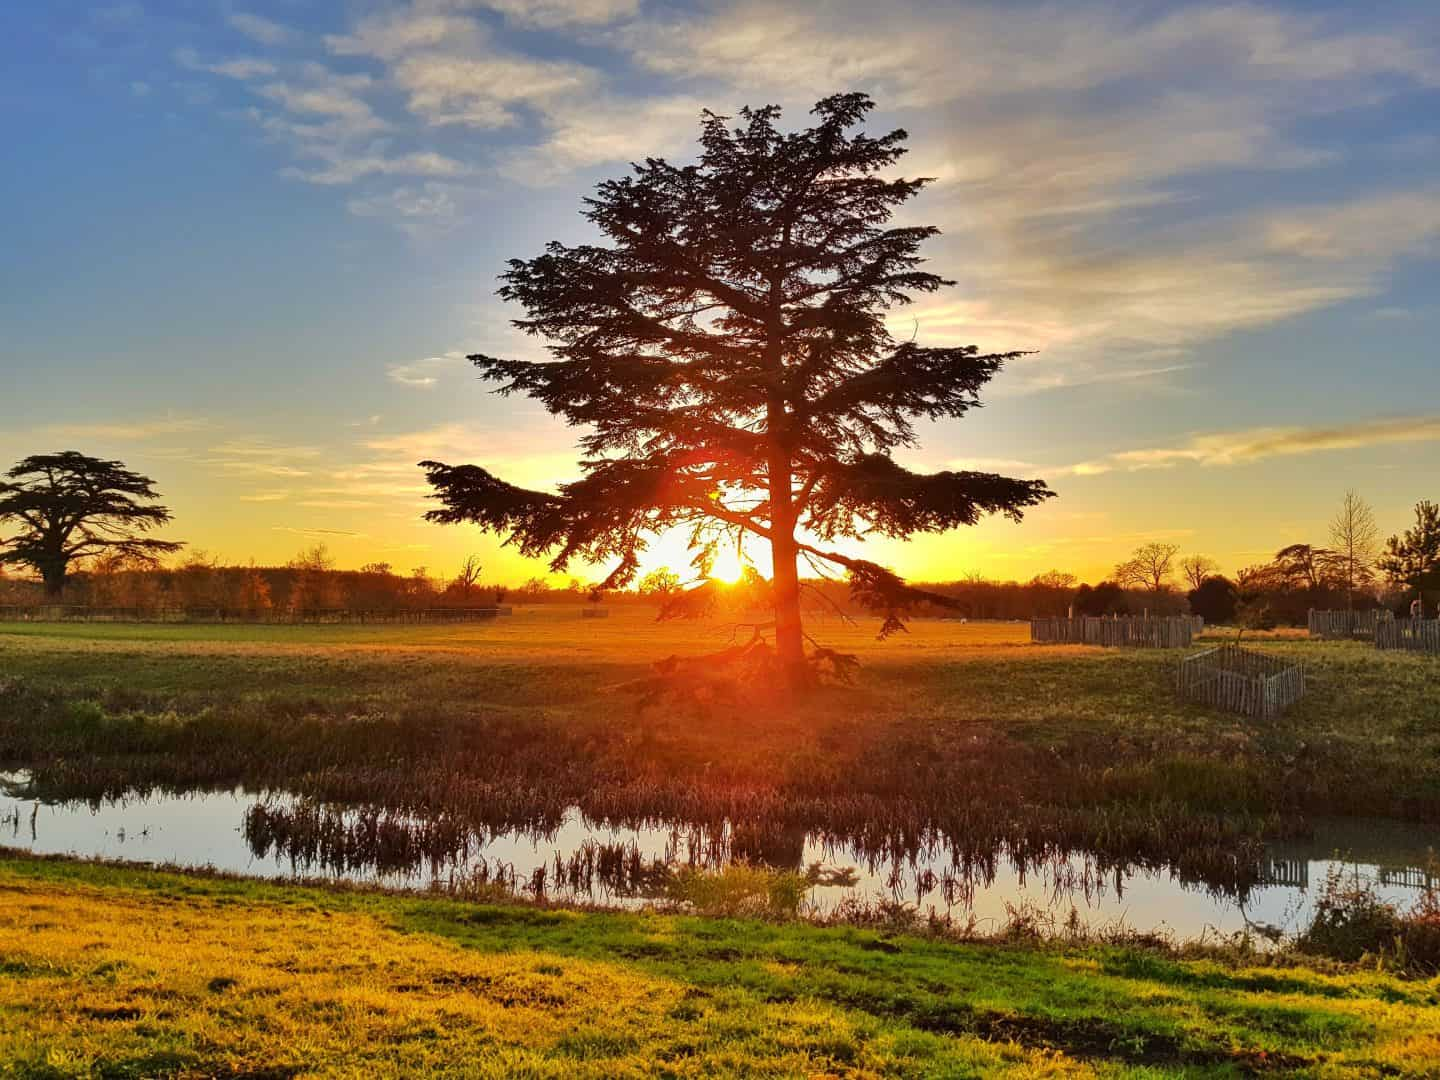 Tree on the National Trust Croome Estate with river in foreground reflecting the sunset and the tree